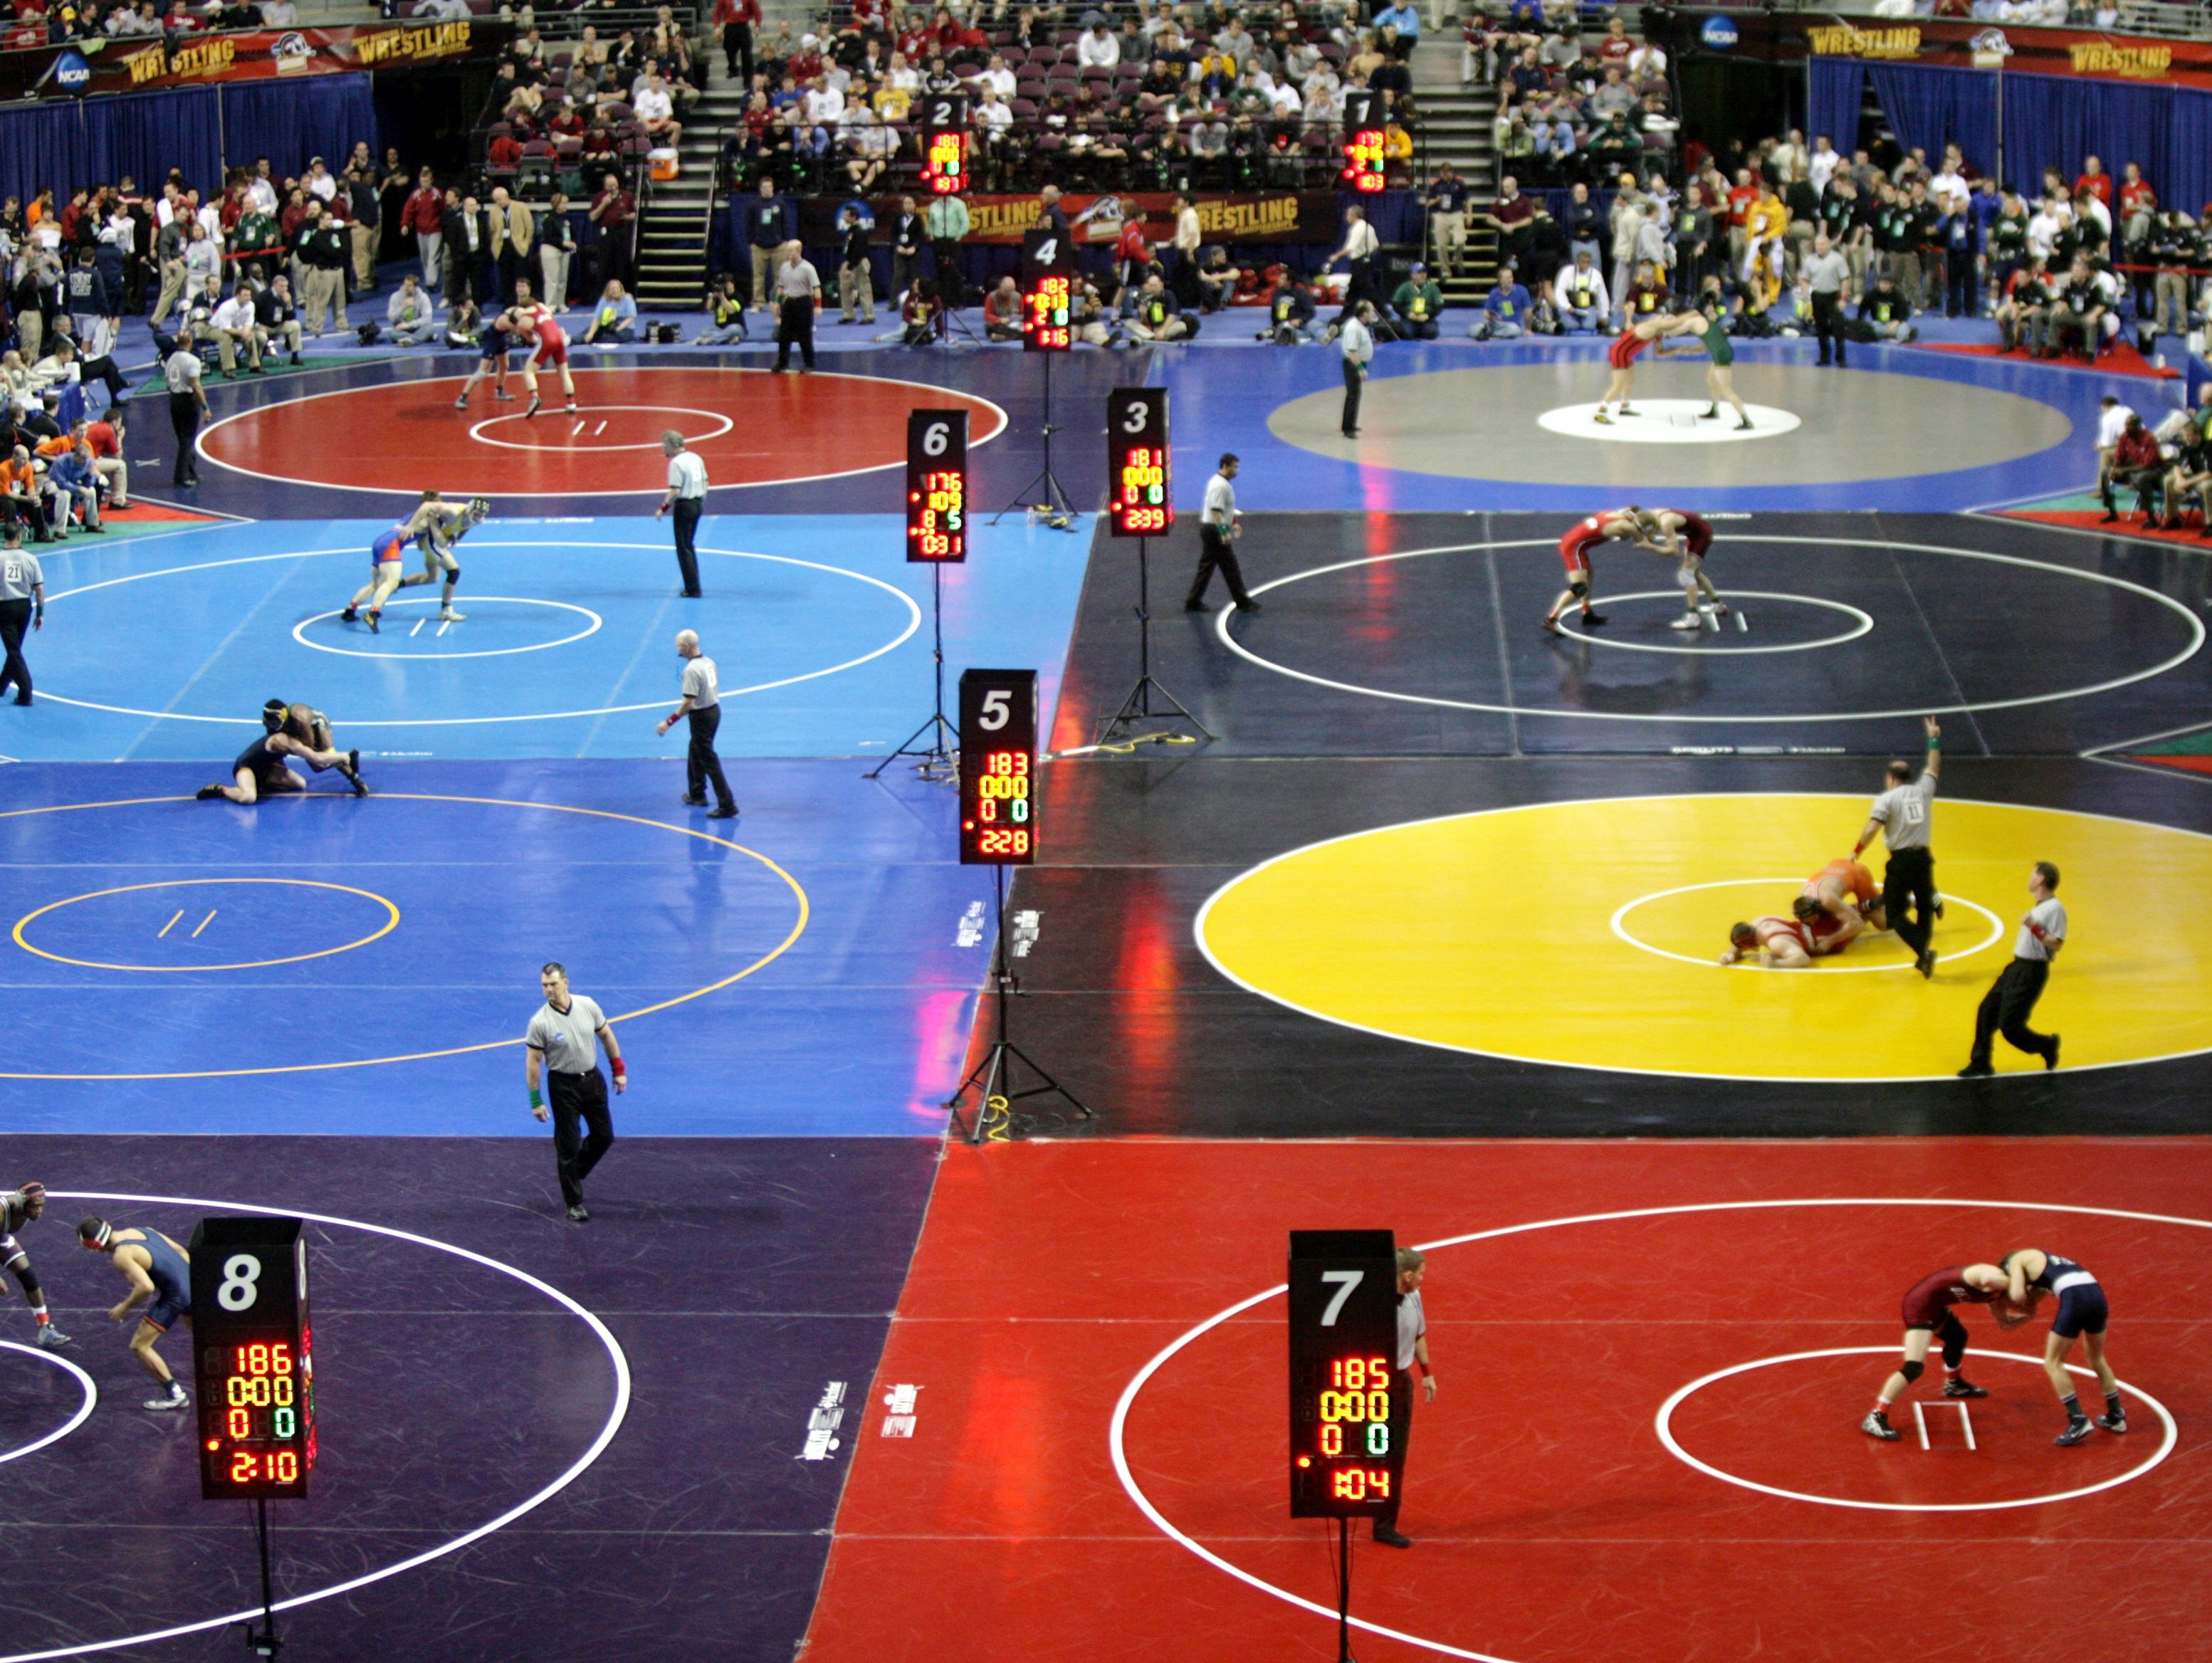 The 2007 NCAA Division I Wrestling Championships on March 15, 2007, at the Palace of Auburn Hills.